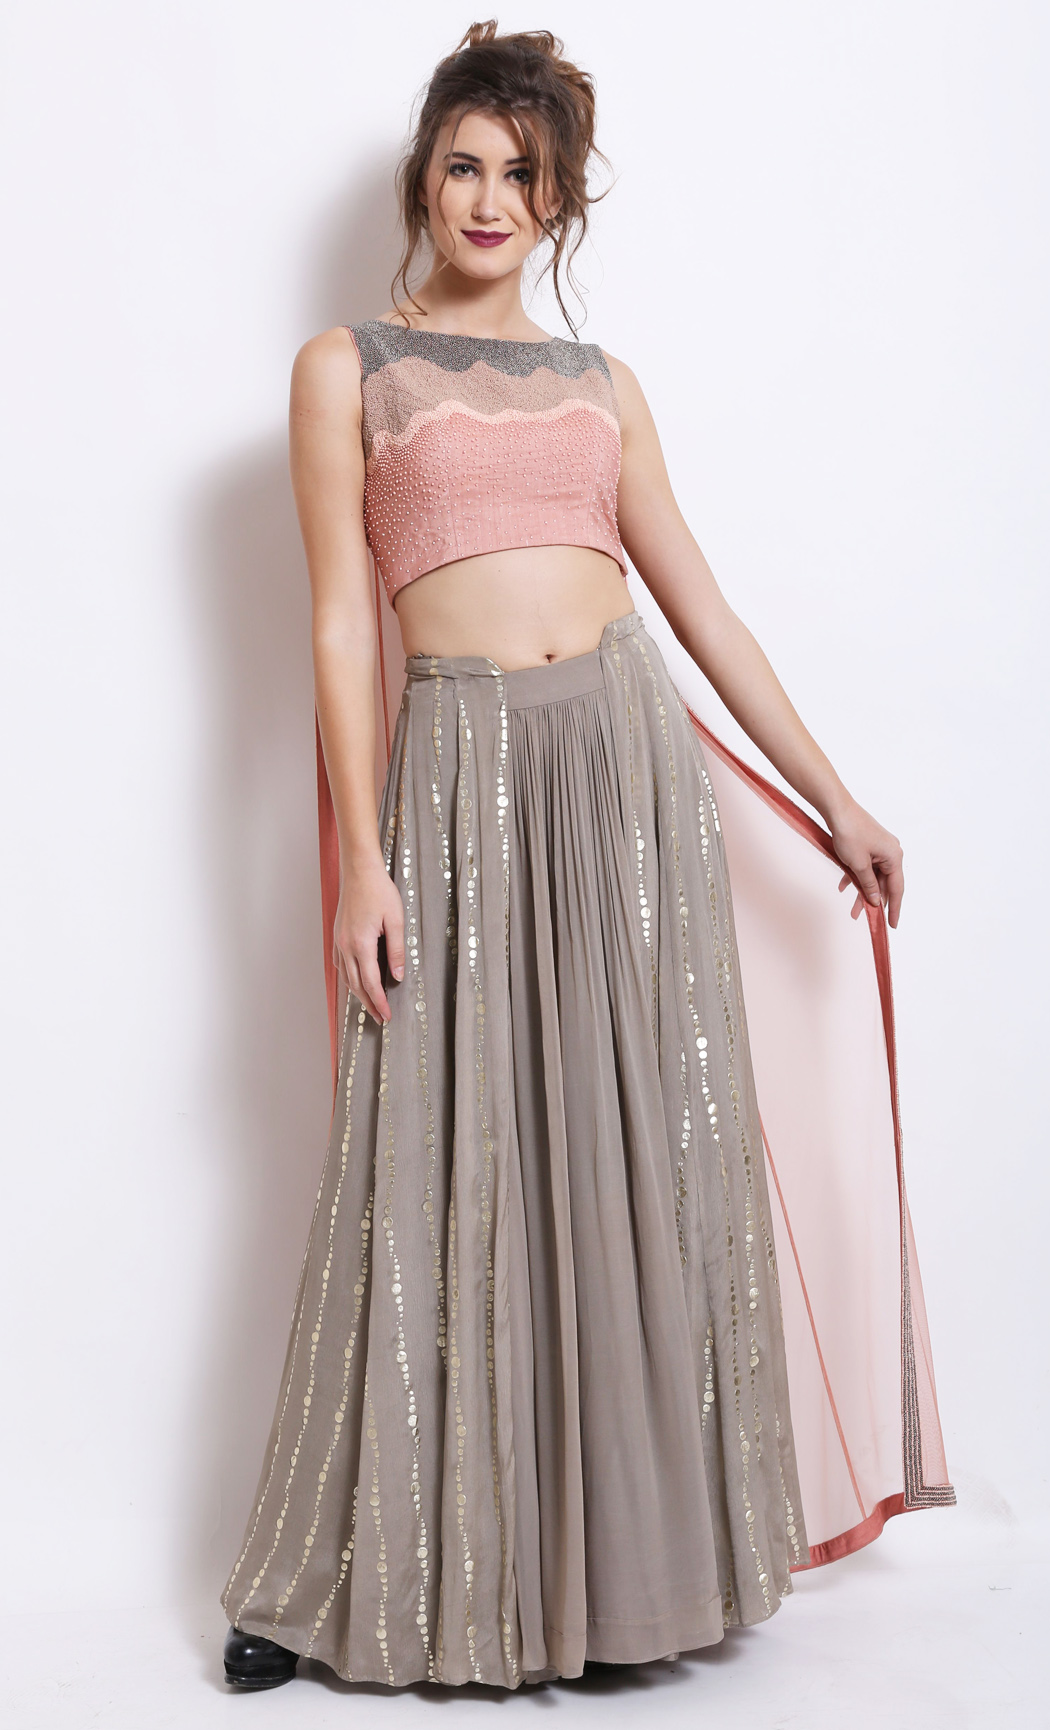 Salmon Pink Crop Top and Cape with a Grey Skirt - Buy Online